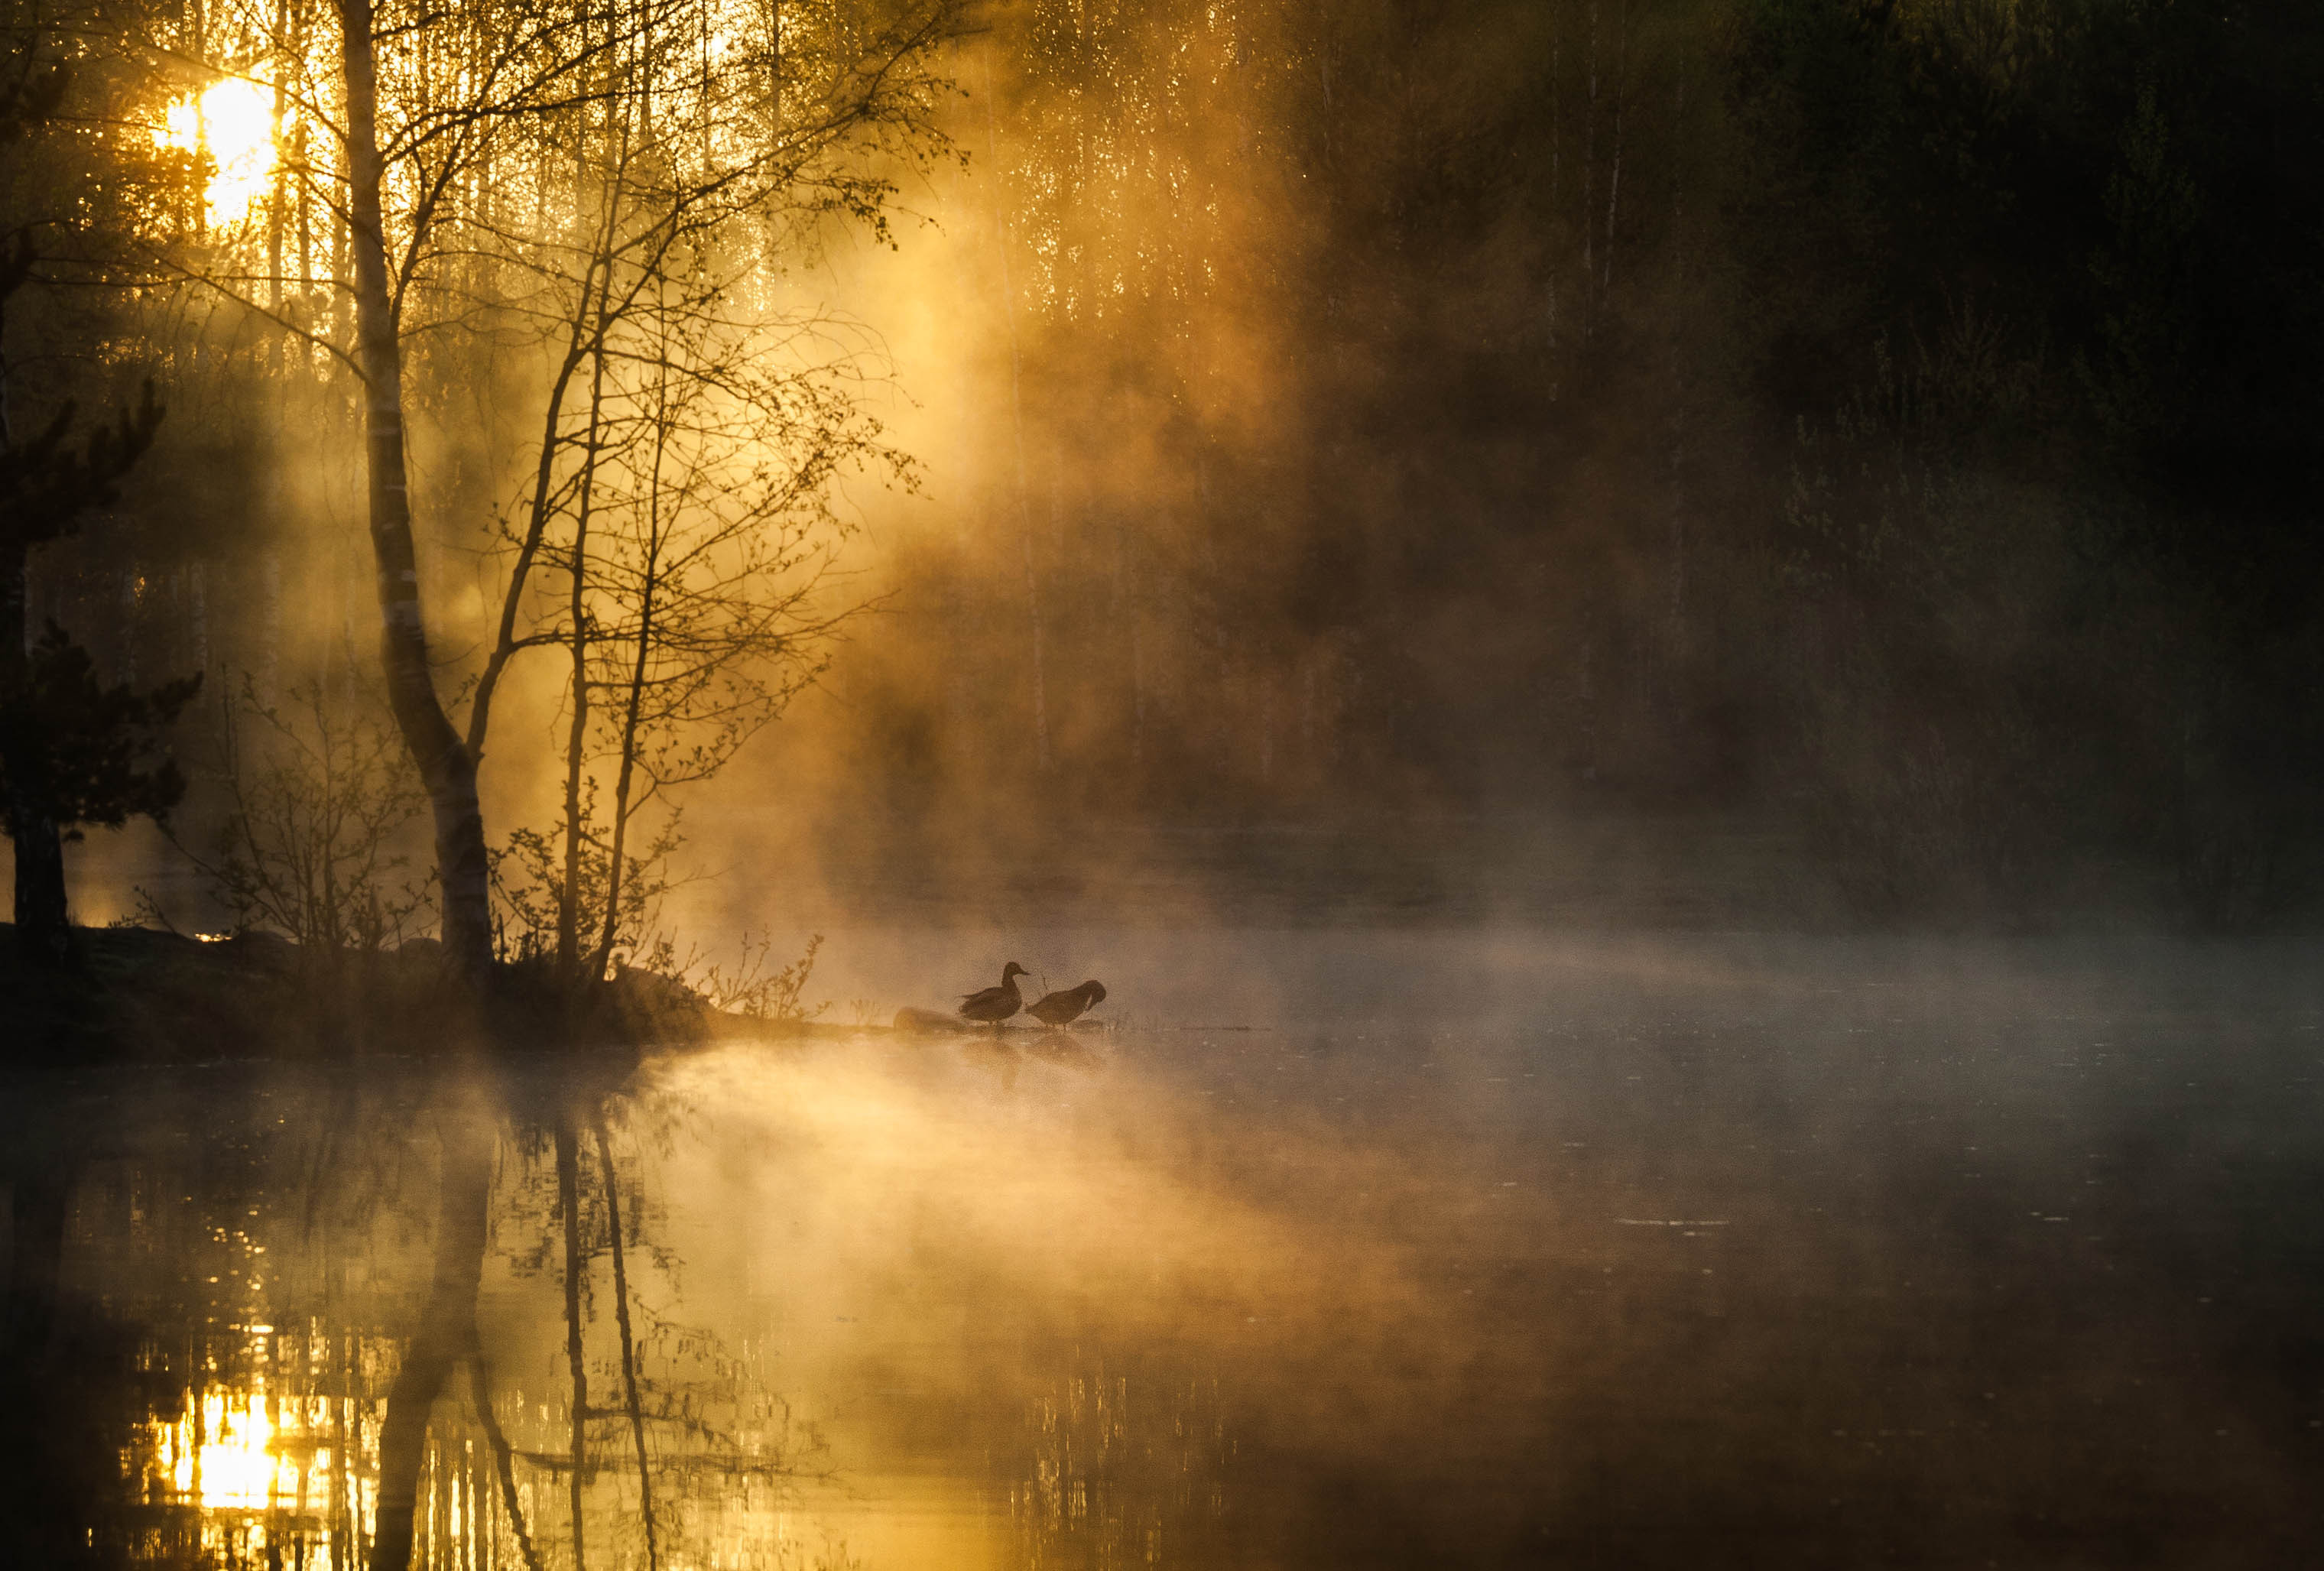 autumn fog wallpapers high quality download free